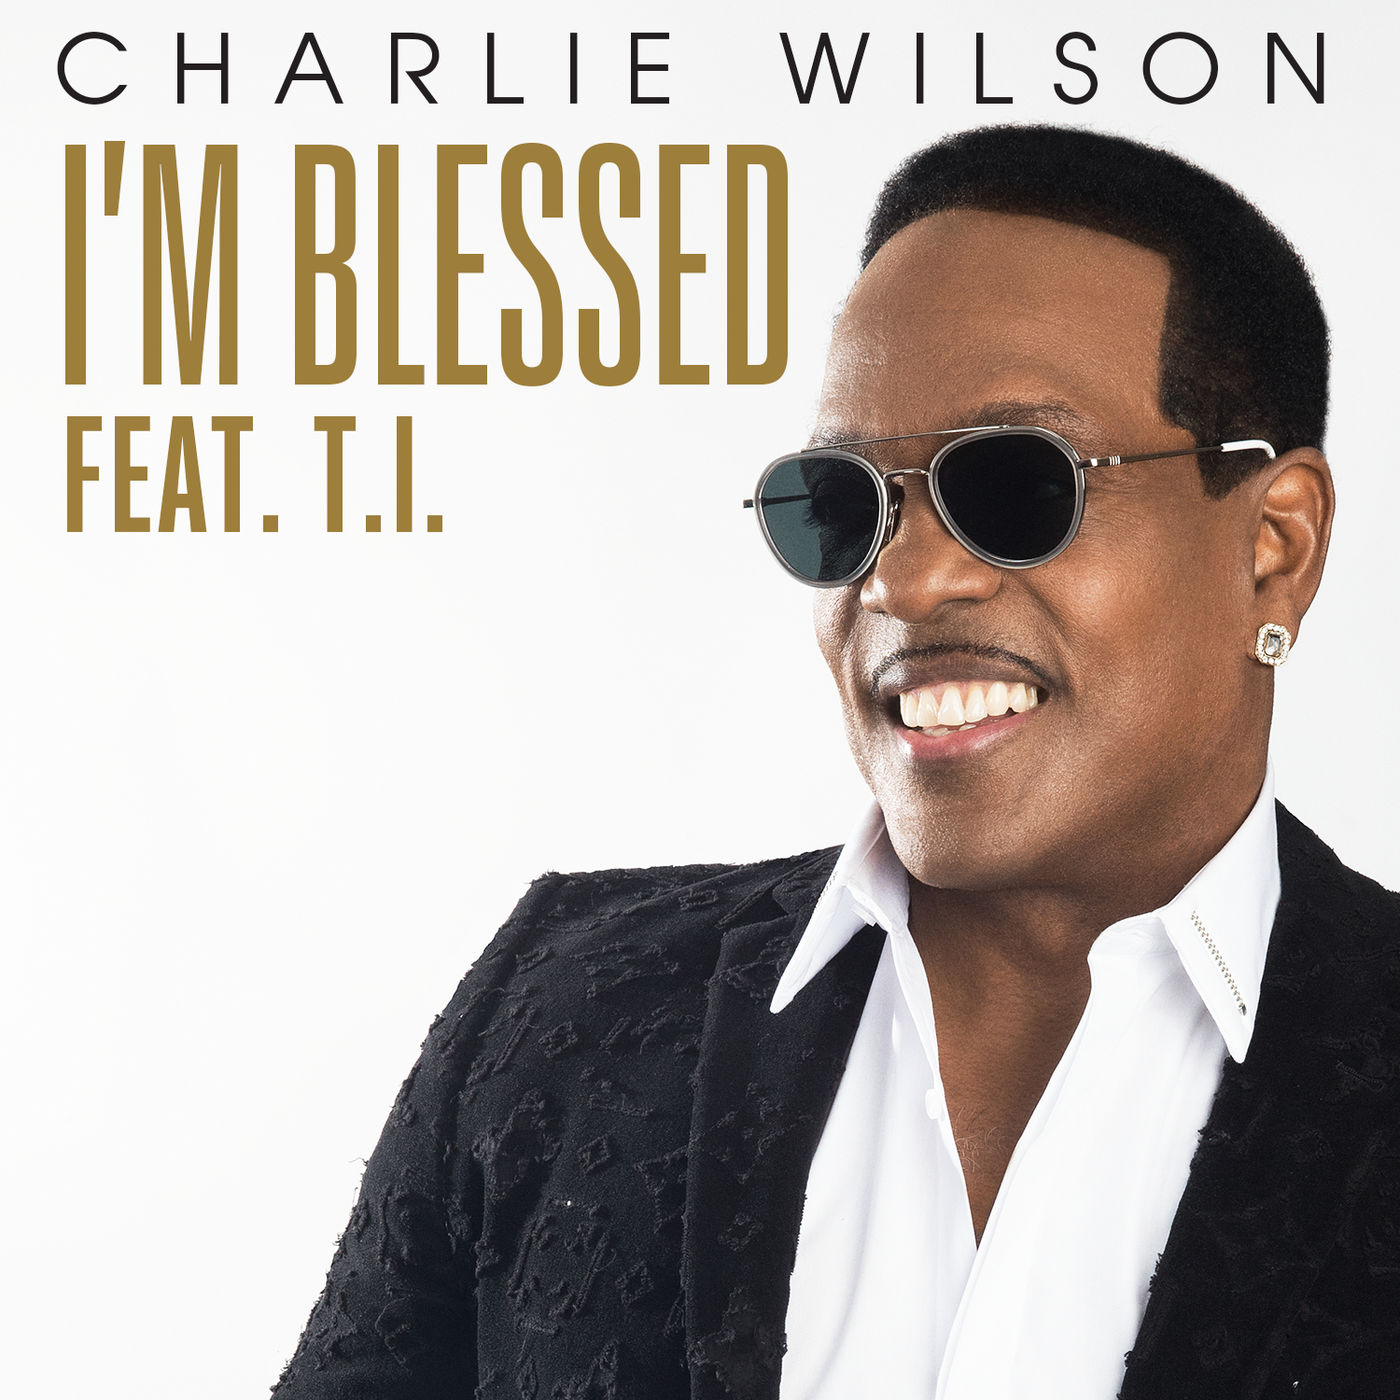 you are charlie wilson mp3 free download